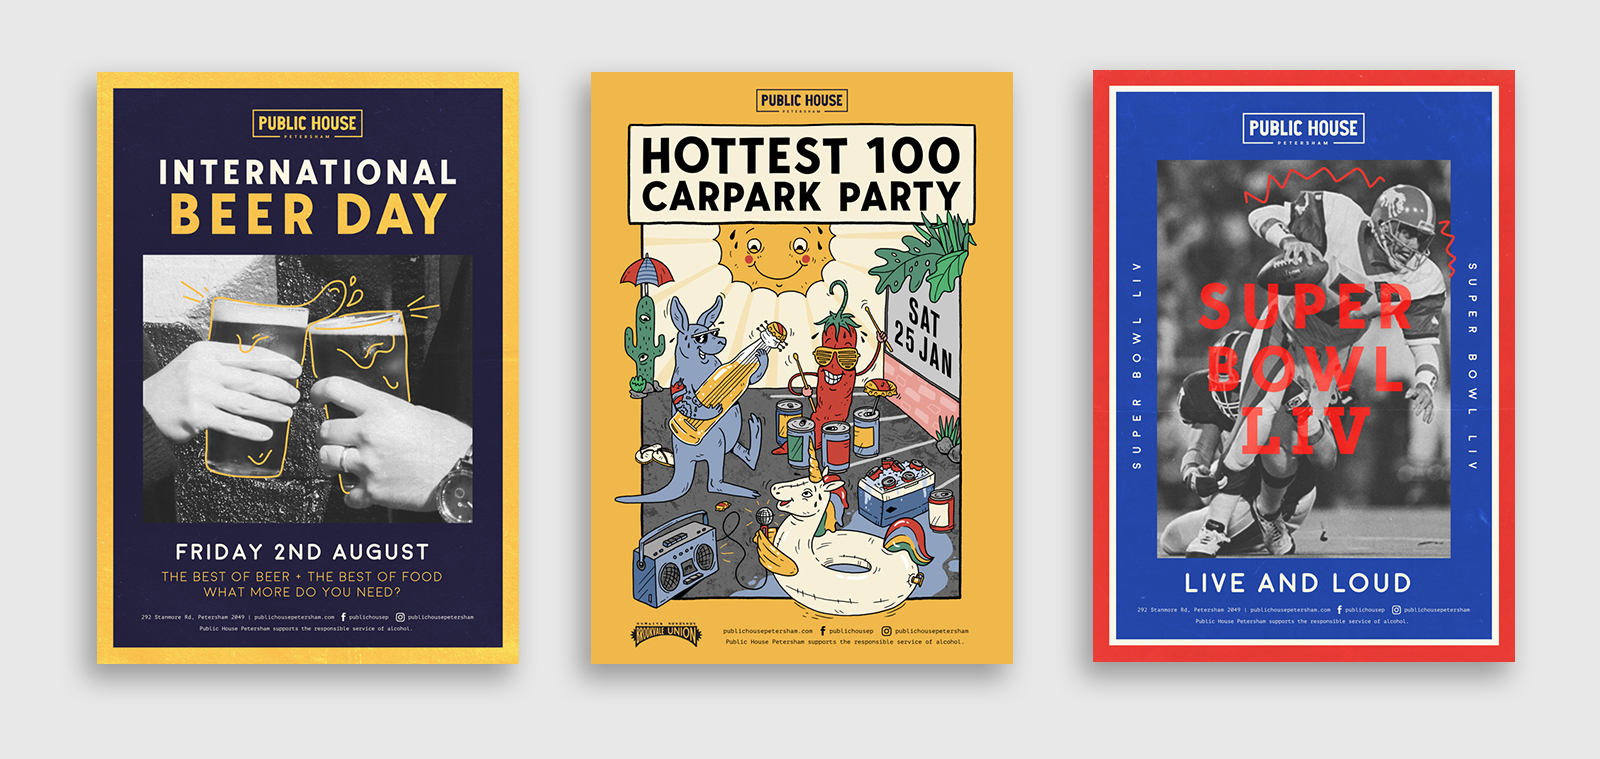 three different poster designs for events at public house petersham